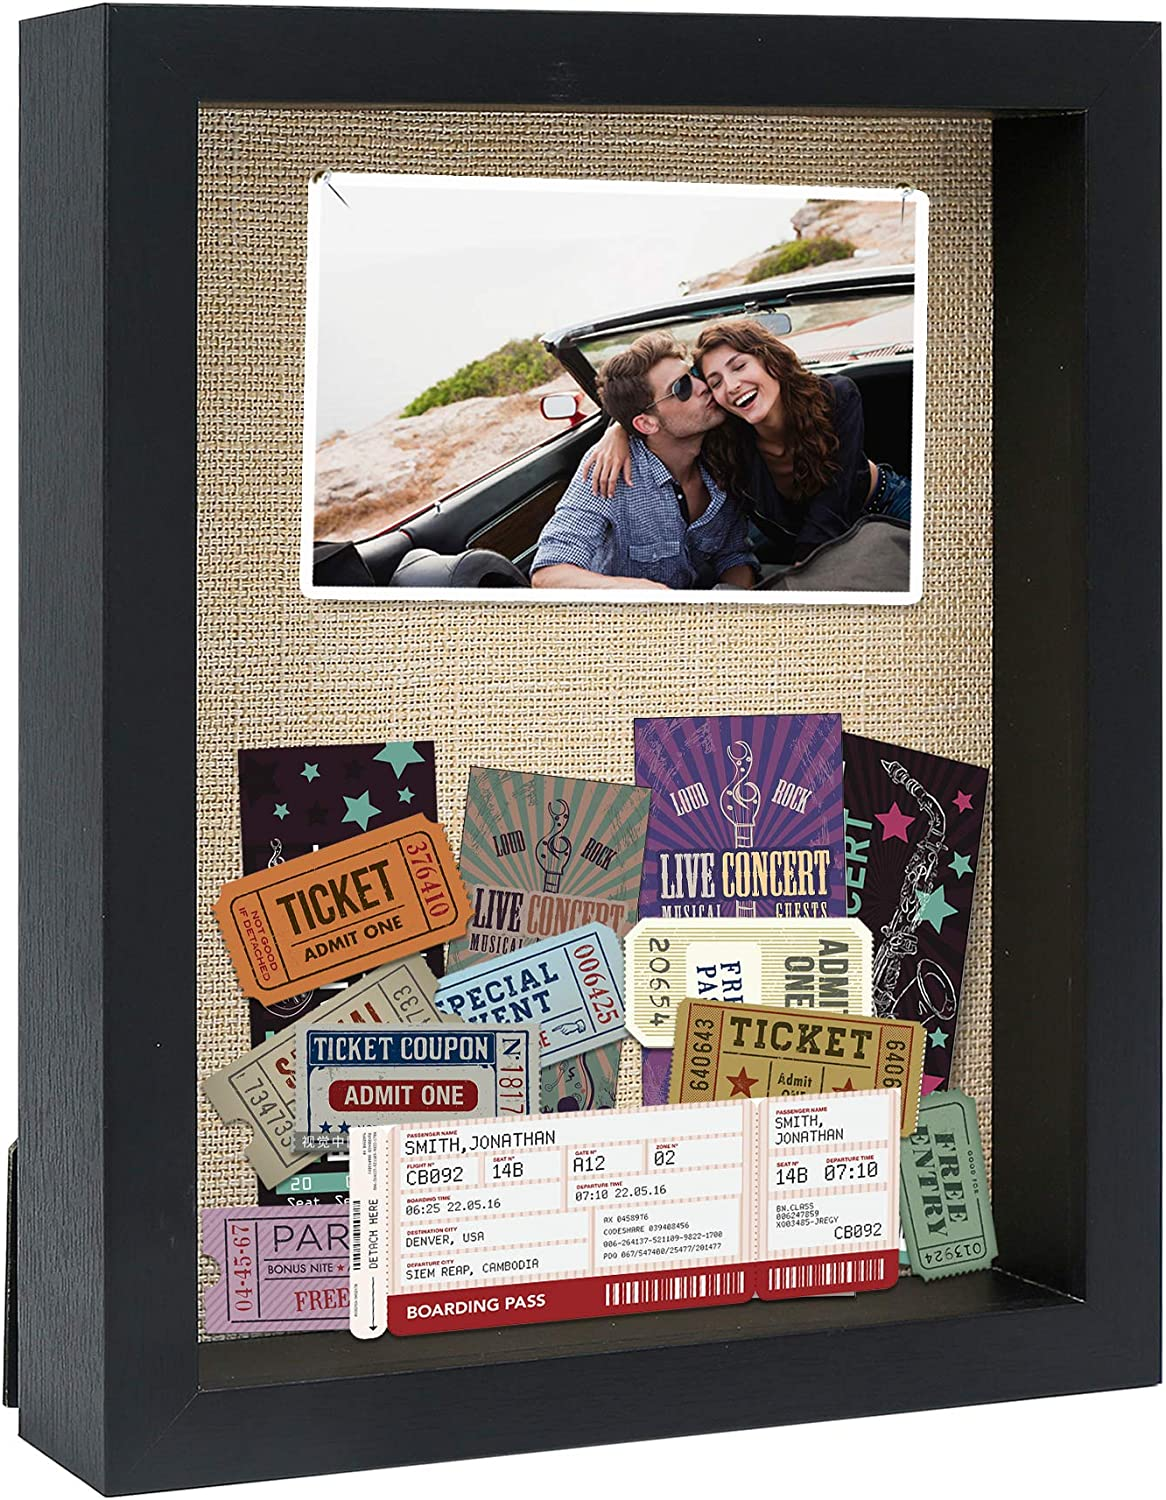 PKaL 8 x 10 Shadow Box Frames - Shadow Box Display Case for Memorabilia Keepsake with Stick Pins - Memory Shadow Box for Wedding,Baby,Sports Medal,Game Ticket,Picture, Flower, Wood Shadow Box(Black)